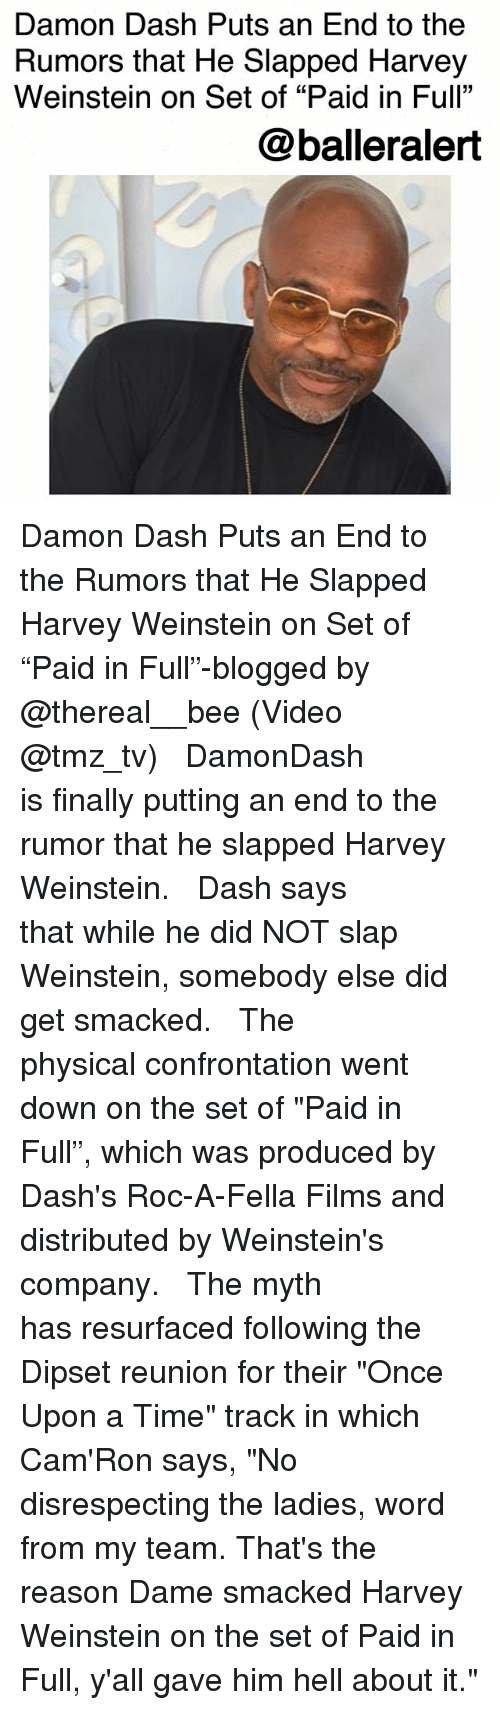 """Dipset, Memes, and Once Upon a Time: Damon Dash Puts an End to the  Rumors that He Slapped Harvey  Weinstein on Set of """"Paid in Full""""  @balleralert Damon Dash Puts an End to the Rumors that He Slapped Harvey Weinstein on Set of """"Paid in Full""""-blogged by @thereal__bee (Video @tmz_tv) ⠀⠀⠀⠀⠀⠀⠀⠀⠀ ⠀⠀ DamonDash is finally putting an end to the rumor that he slapped Harvey Weinstein. ⠀⠀⠀⠀⠀⠀⠀⠀⠀ ⠀⠀ Dash says that while he did NOT slap Weinstein, somebody else did get smacked. ⠀⠀⠀⠀⠀⠀⠀⠀⠀ ⠀⠀ The physical confrontation went down on the set of """"Paid in Full"""", which was produced by Dash's Roc-A-Fella Films and distributed by Weinstein's company. ⠀⠀⠀⠀⠀⠀⠀⠀⠀ ⠀⠀ The myth has resurfaced following the Dipset reunion for their """"Once Upon a Time"""" track in which Cam'Ron says, """"No disrespecting the ladies, word from my team. That's the reason Dame smacked Harvey Weinstein on the set of Paid in Full, y'all gave him hell about it."""""""